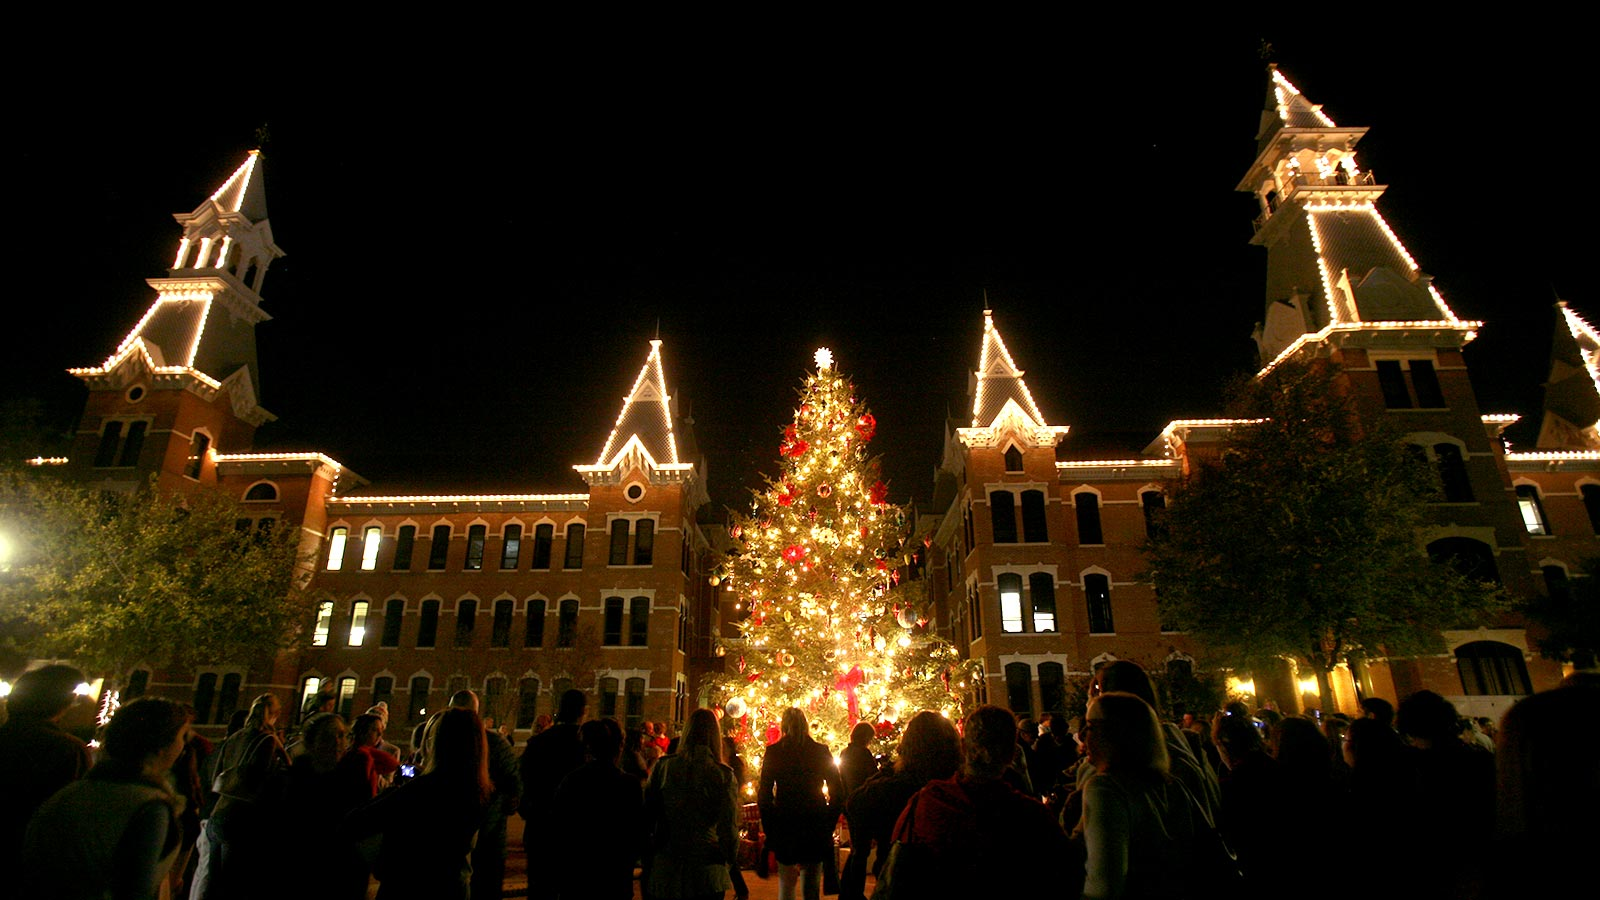 The annual tree lighting ceremony is one the central events of the Christmas season at Baylor.